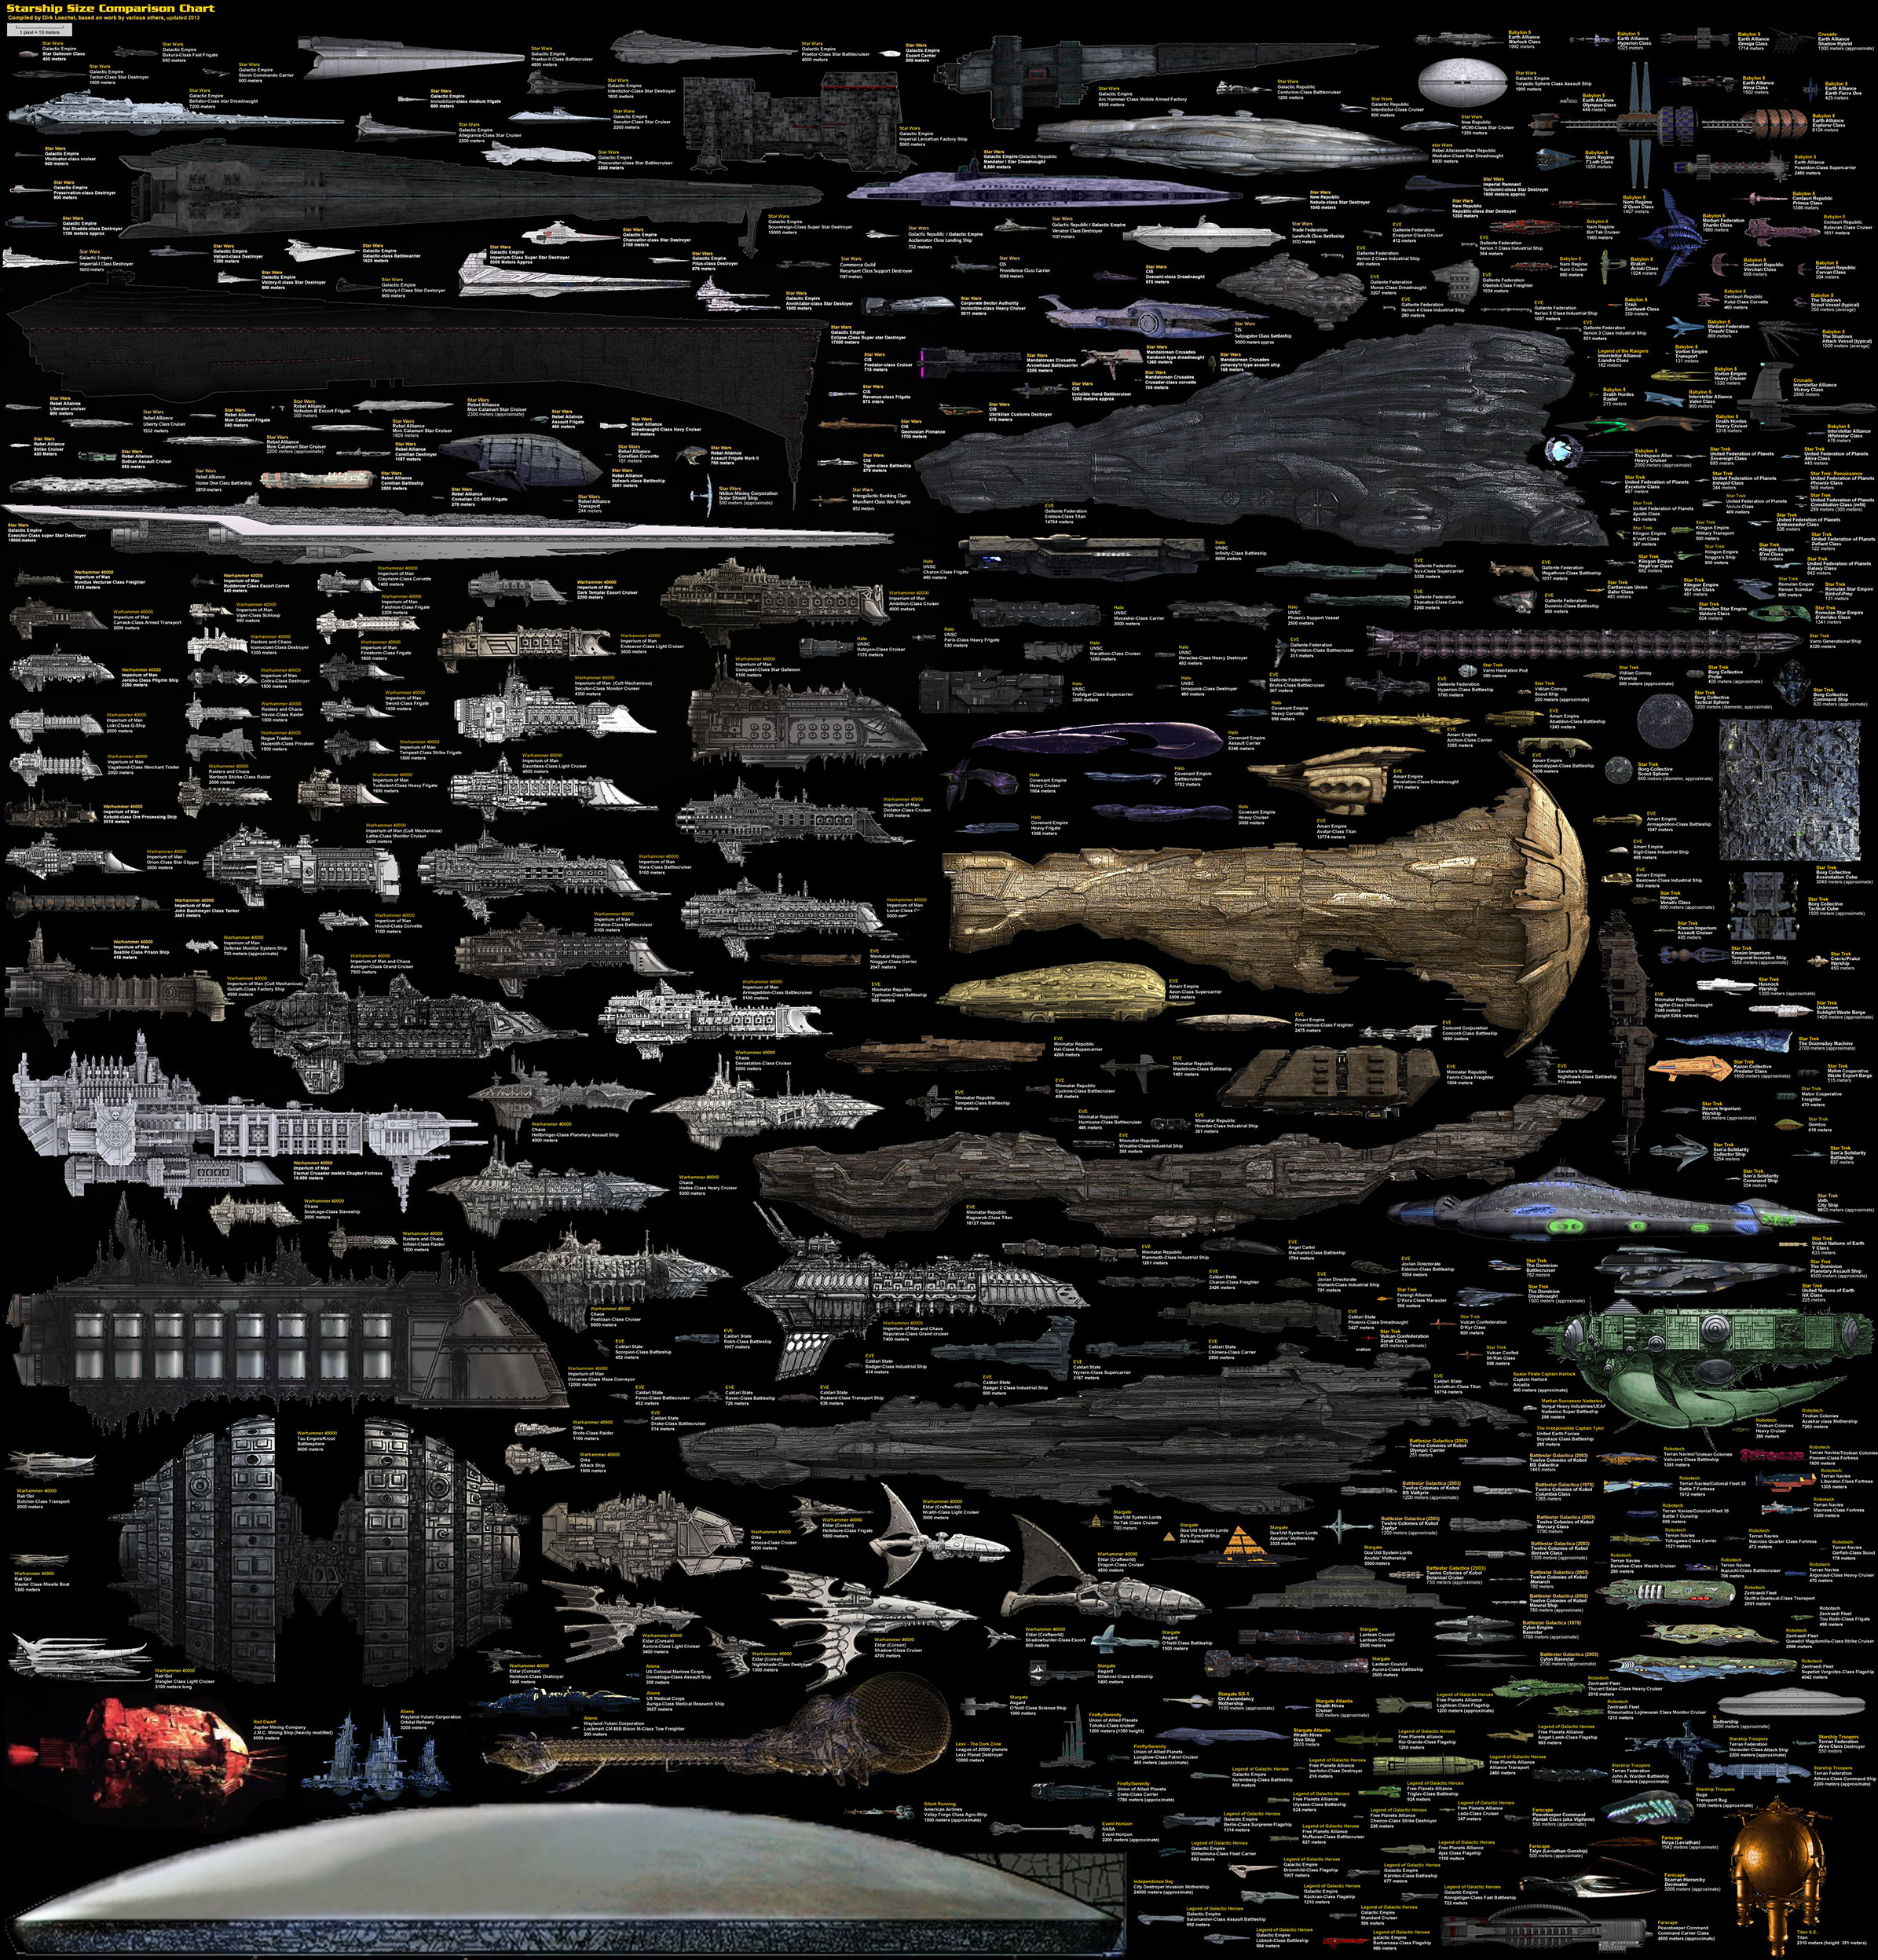 all-scifi-spaceships-known-to-man.jpg